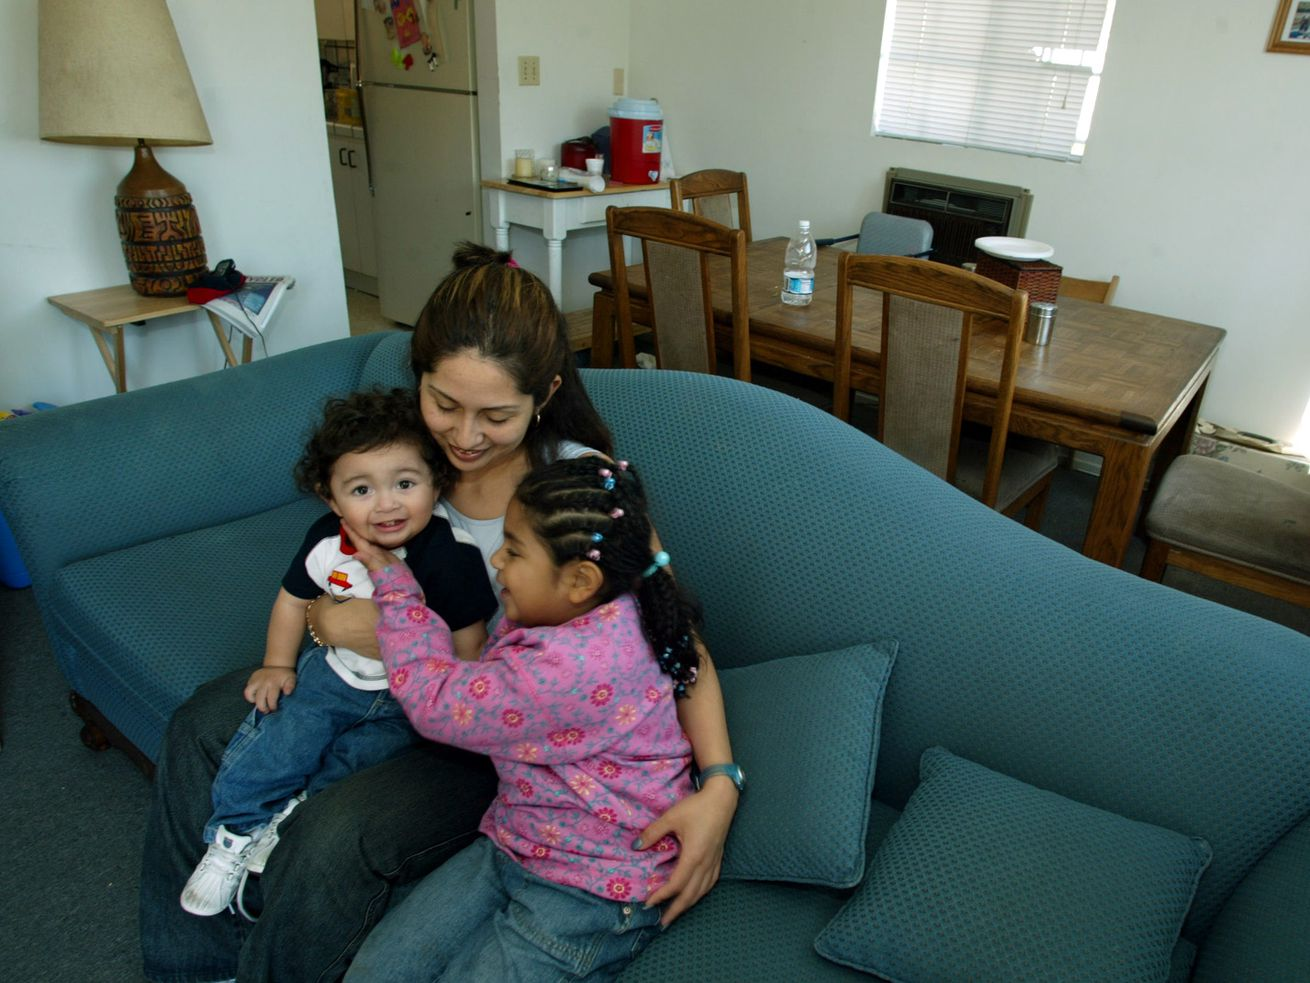 Roxanna Villa, pictured in 2003, who put a down payment on a house with her EITC refund. More parents like her could benefit from a caregiver EITC.